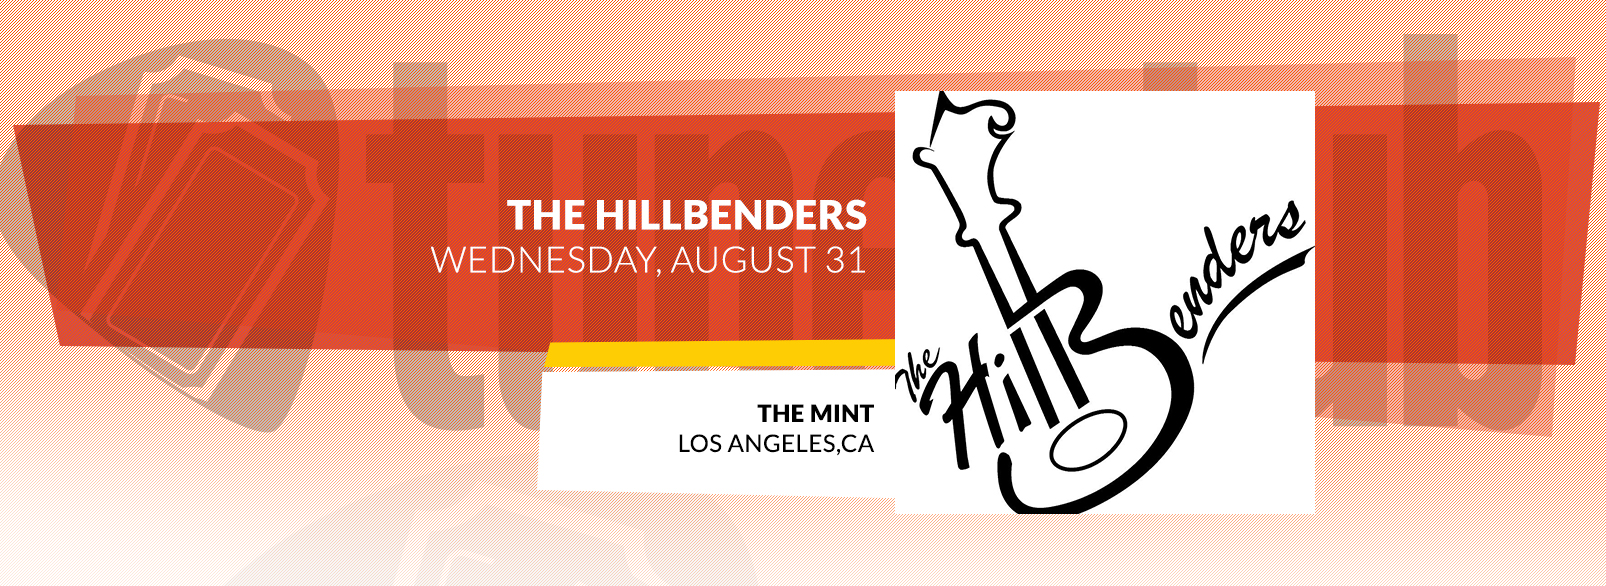 The HillBenders @ The Mint